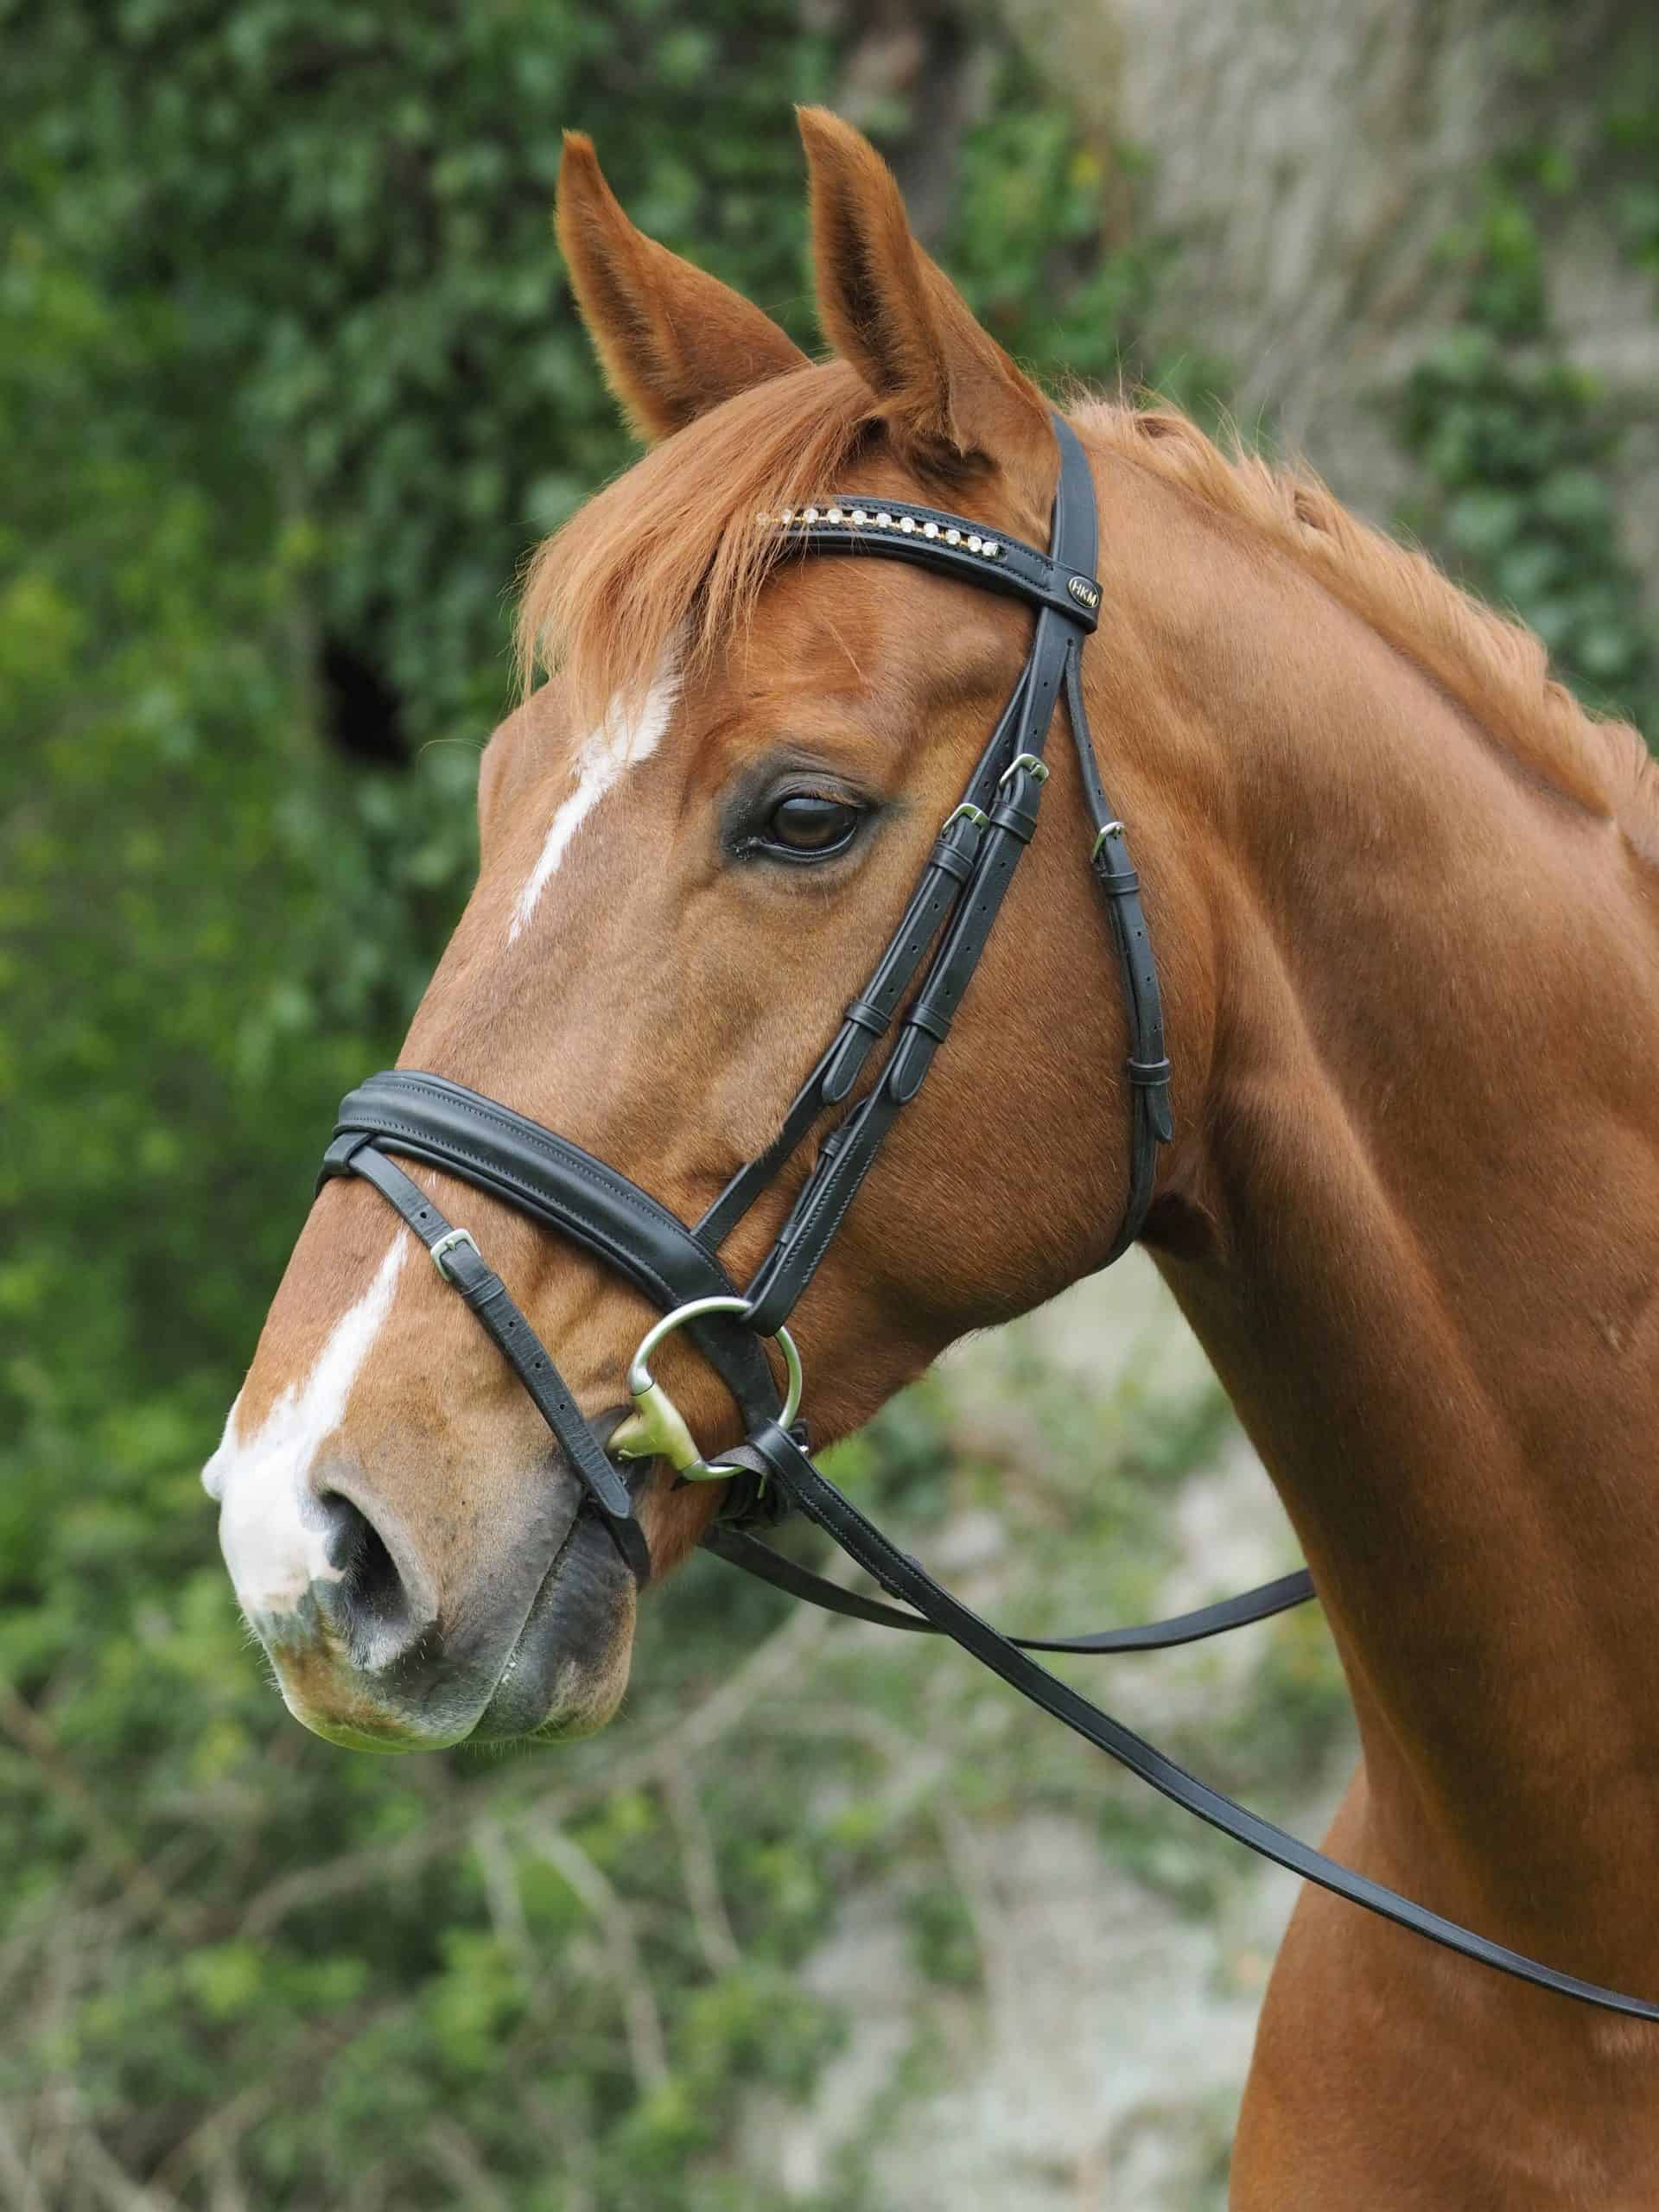 A head shot of a chestnut horse in a snaffle bridle.